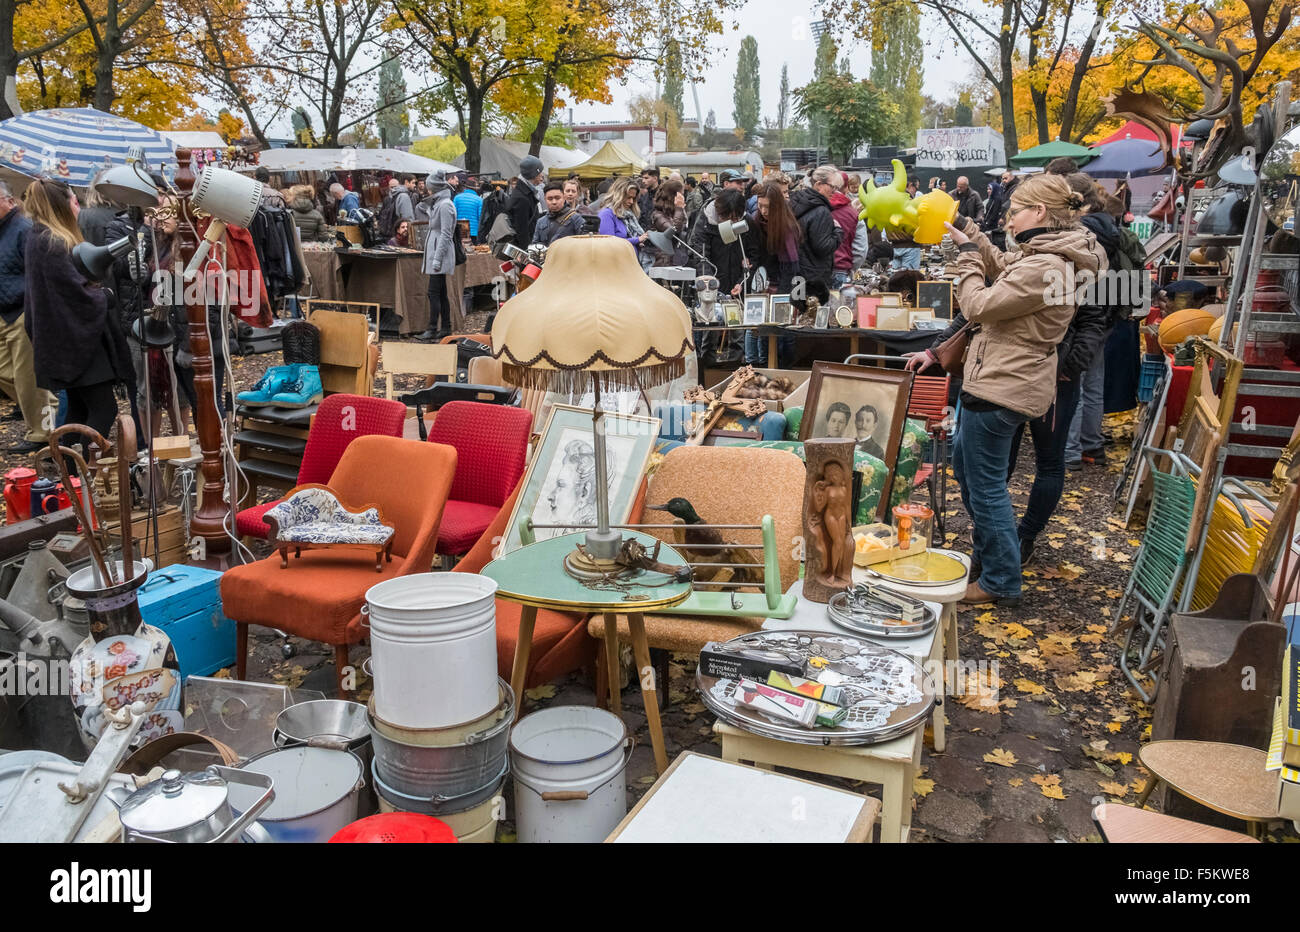 Flohmarkt Duisburg Heute Flohmarkt Stock Photos And Flohmarkt Stock Images Alamy